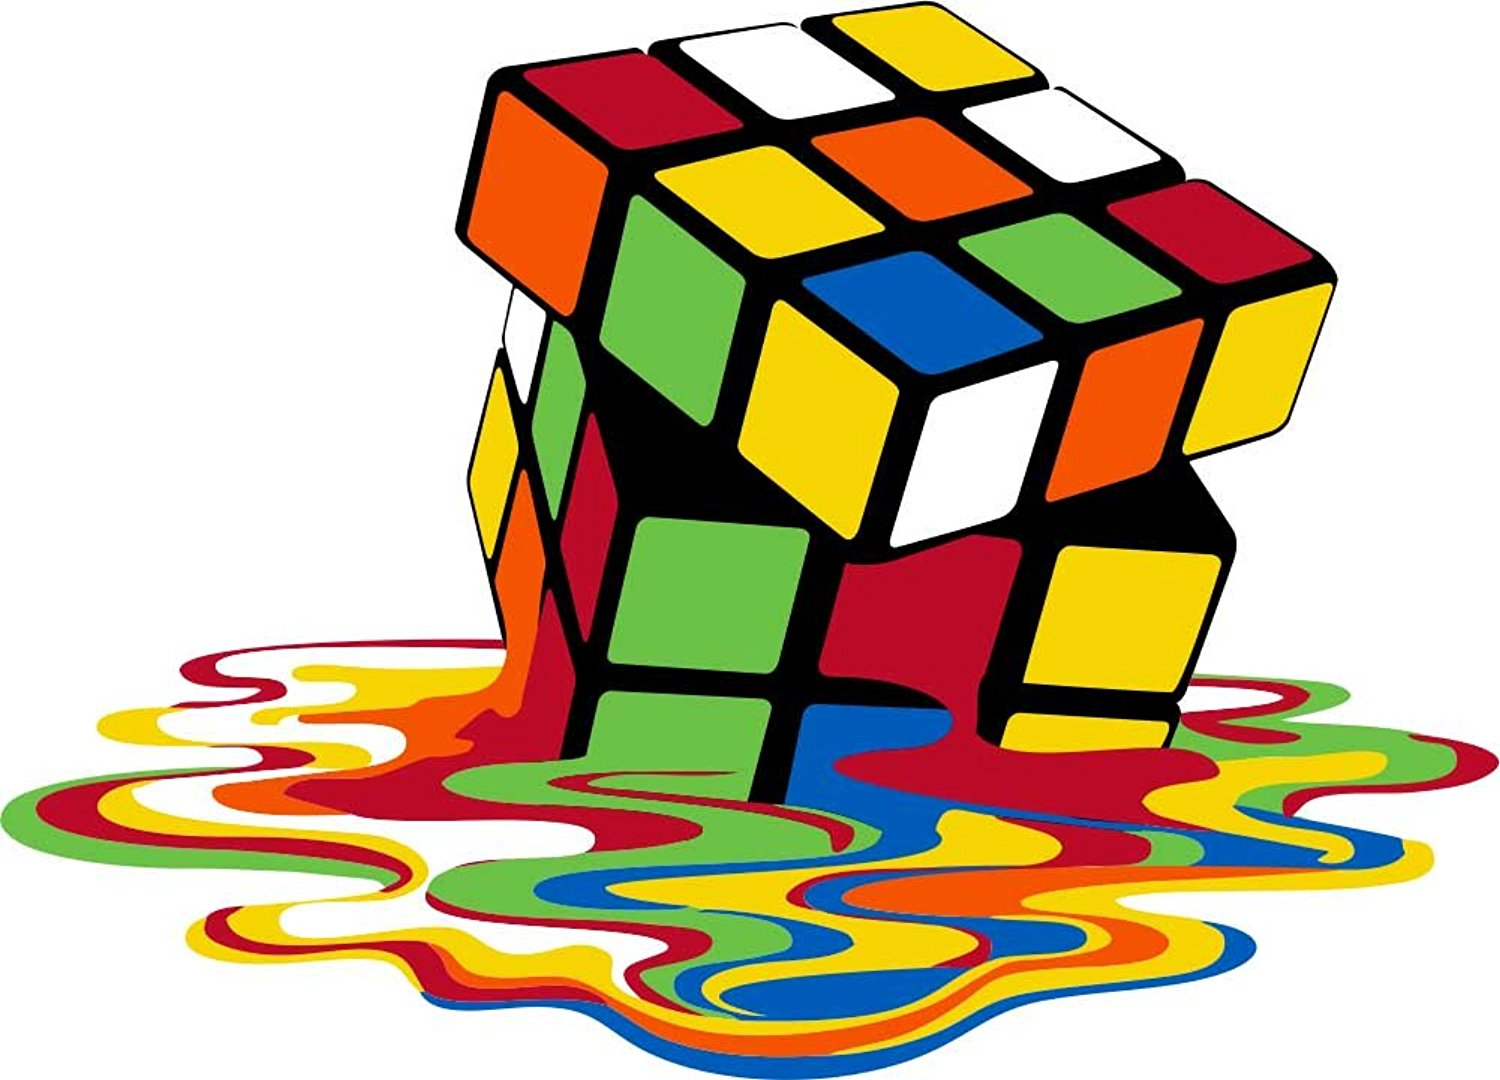 Cube clipart puzzle cube. Rubiks at getdrawings com